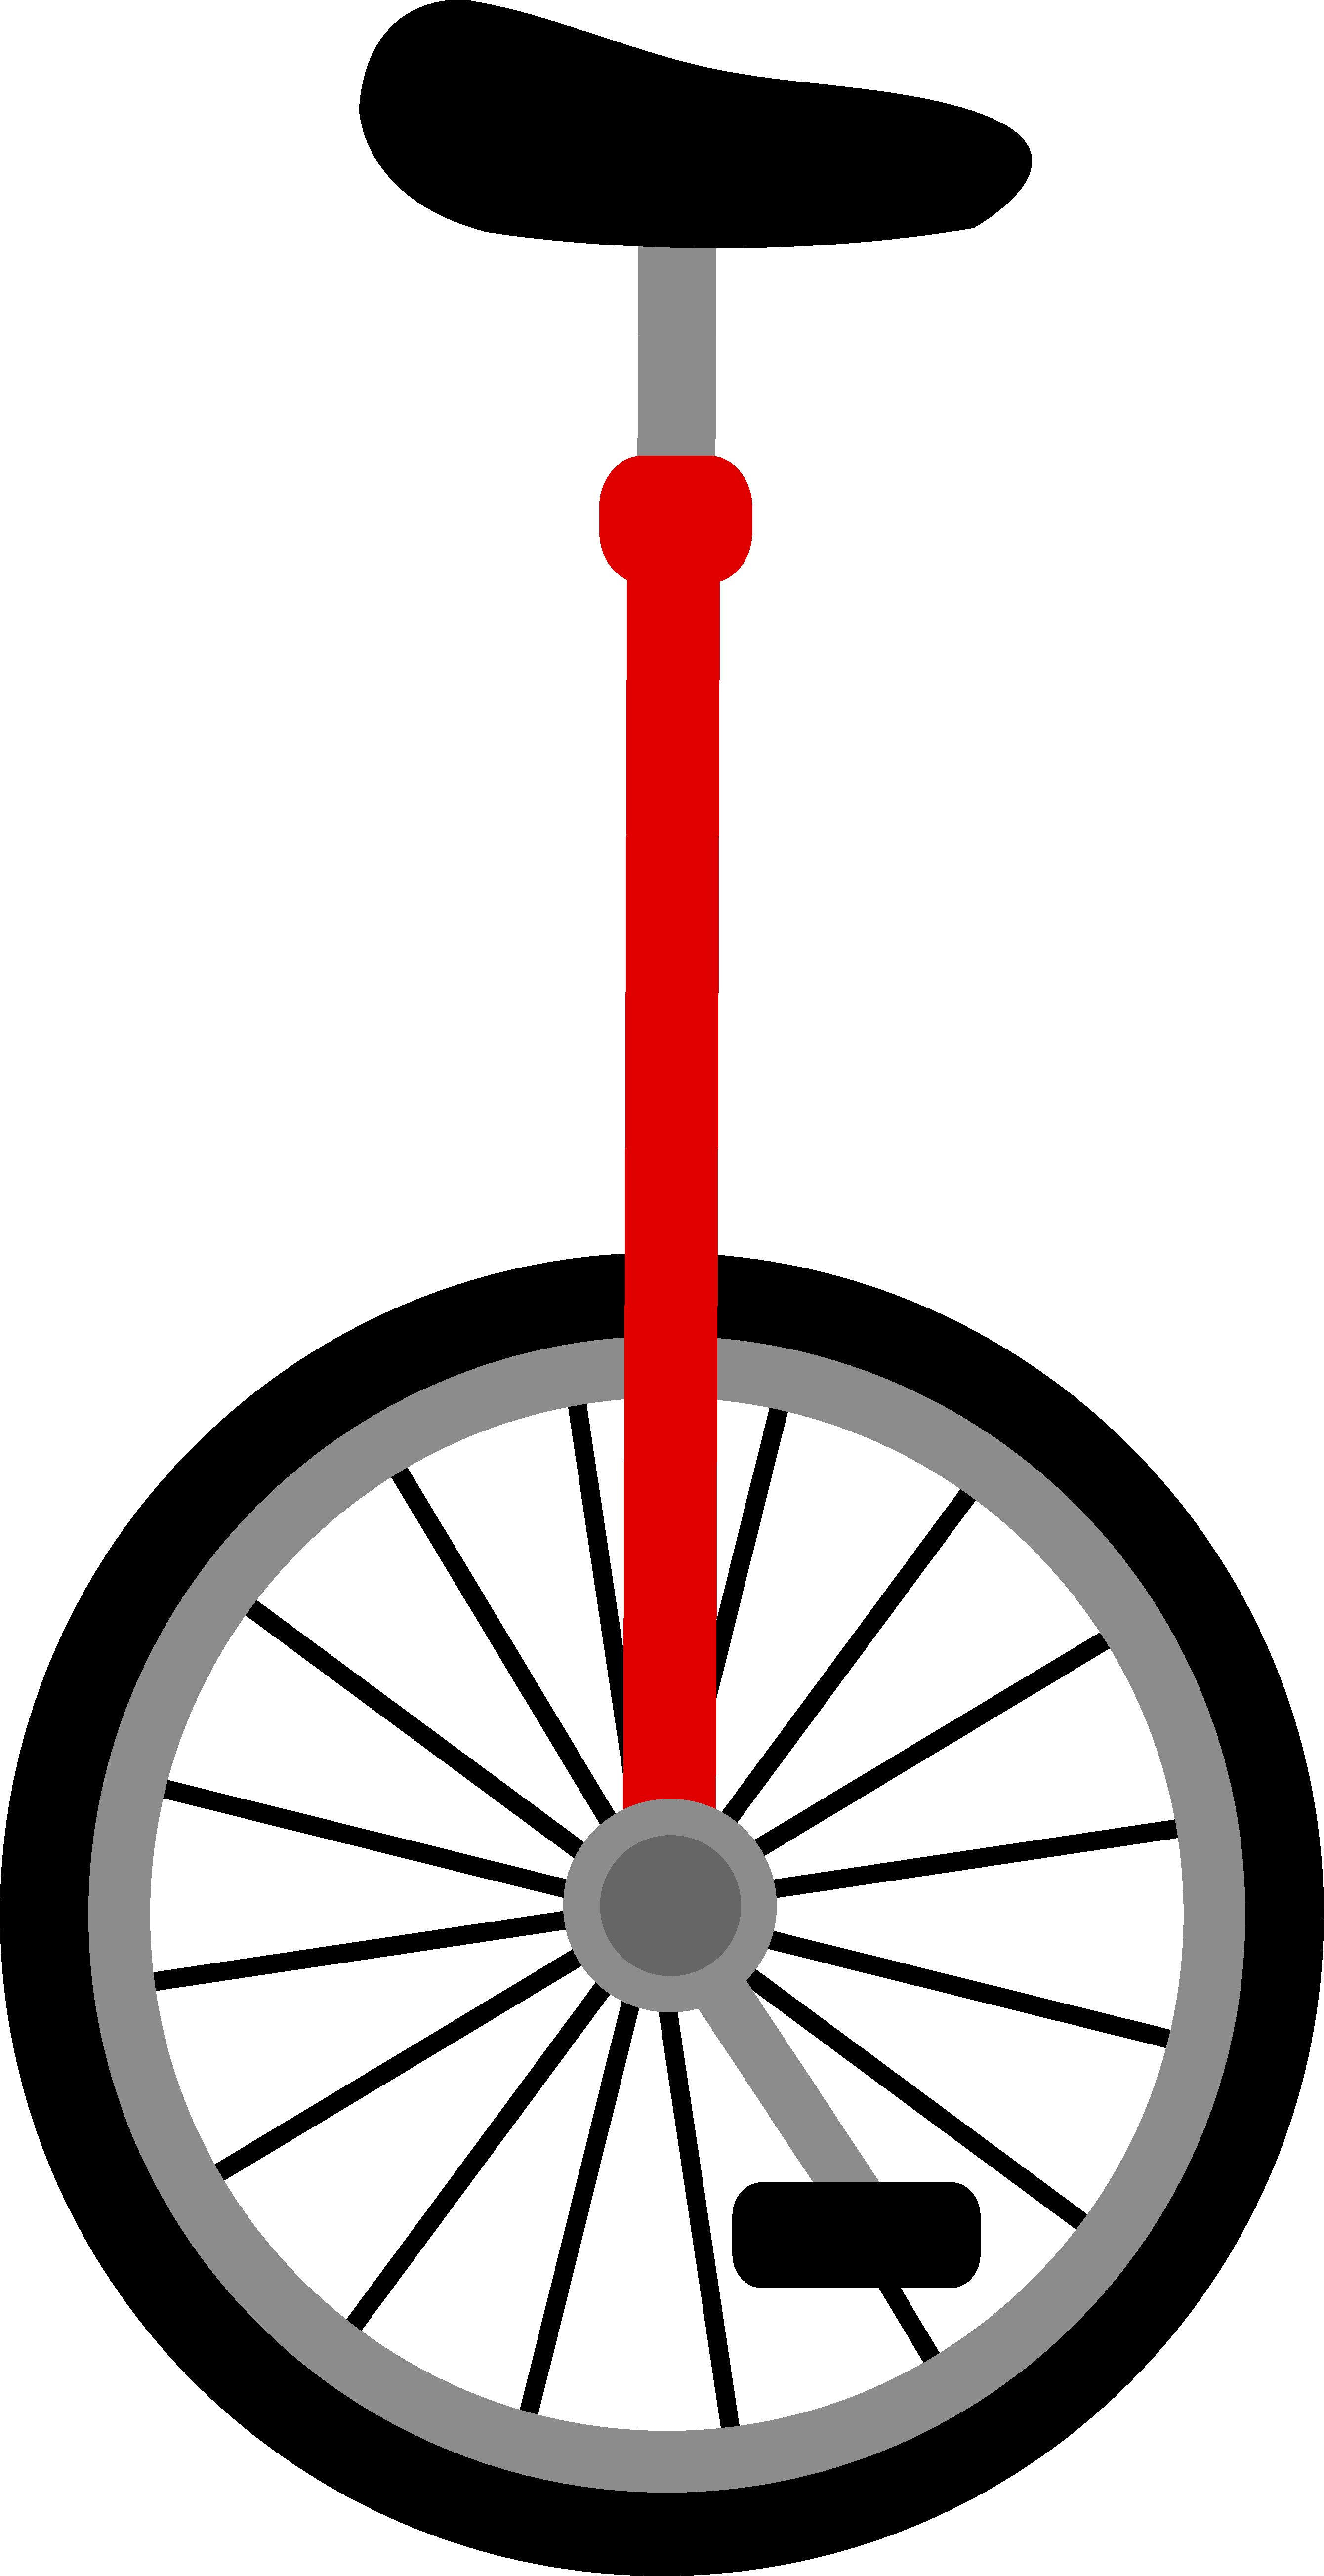 2680x5215 Simple Red Unicycle Design